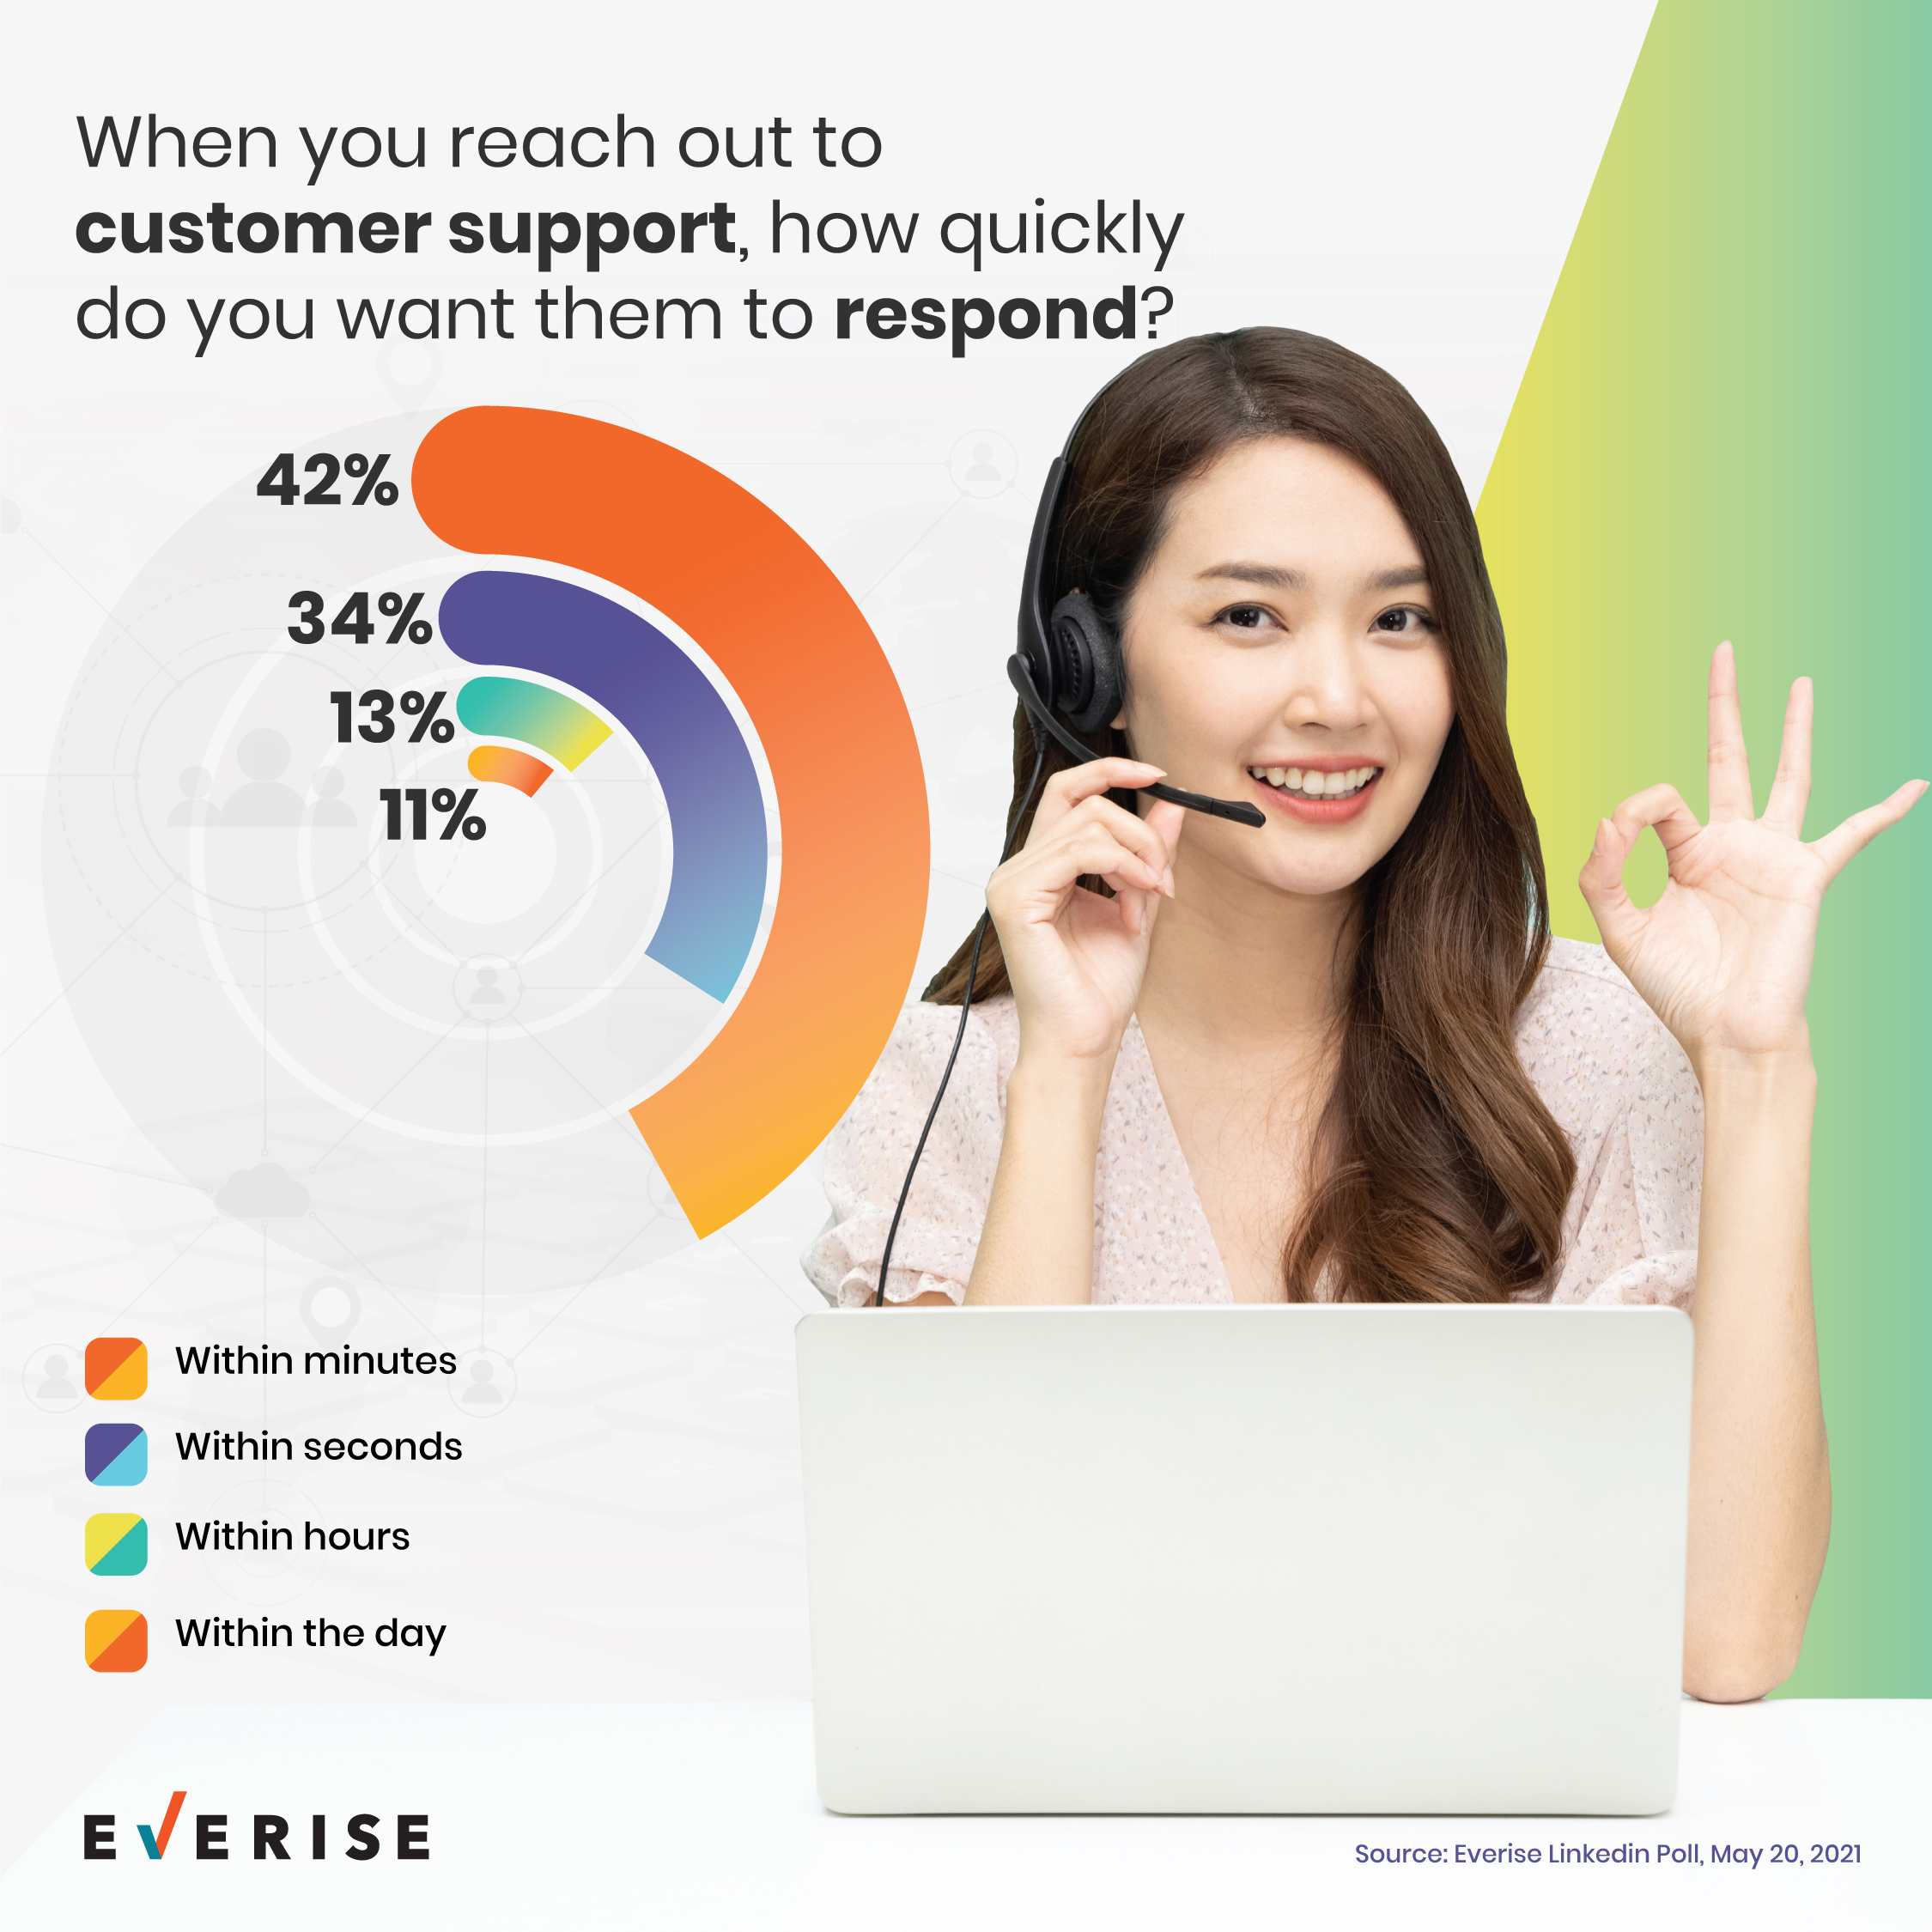 Response speed expectations for customer support